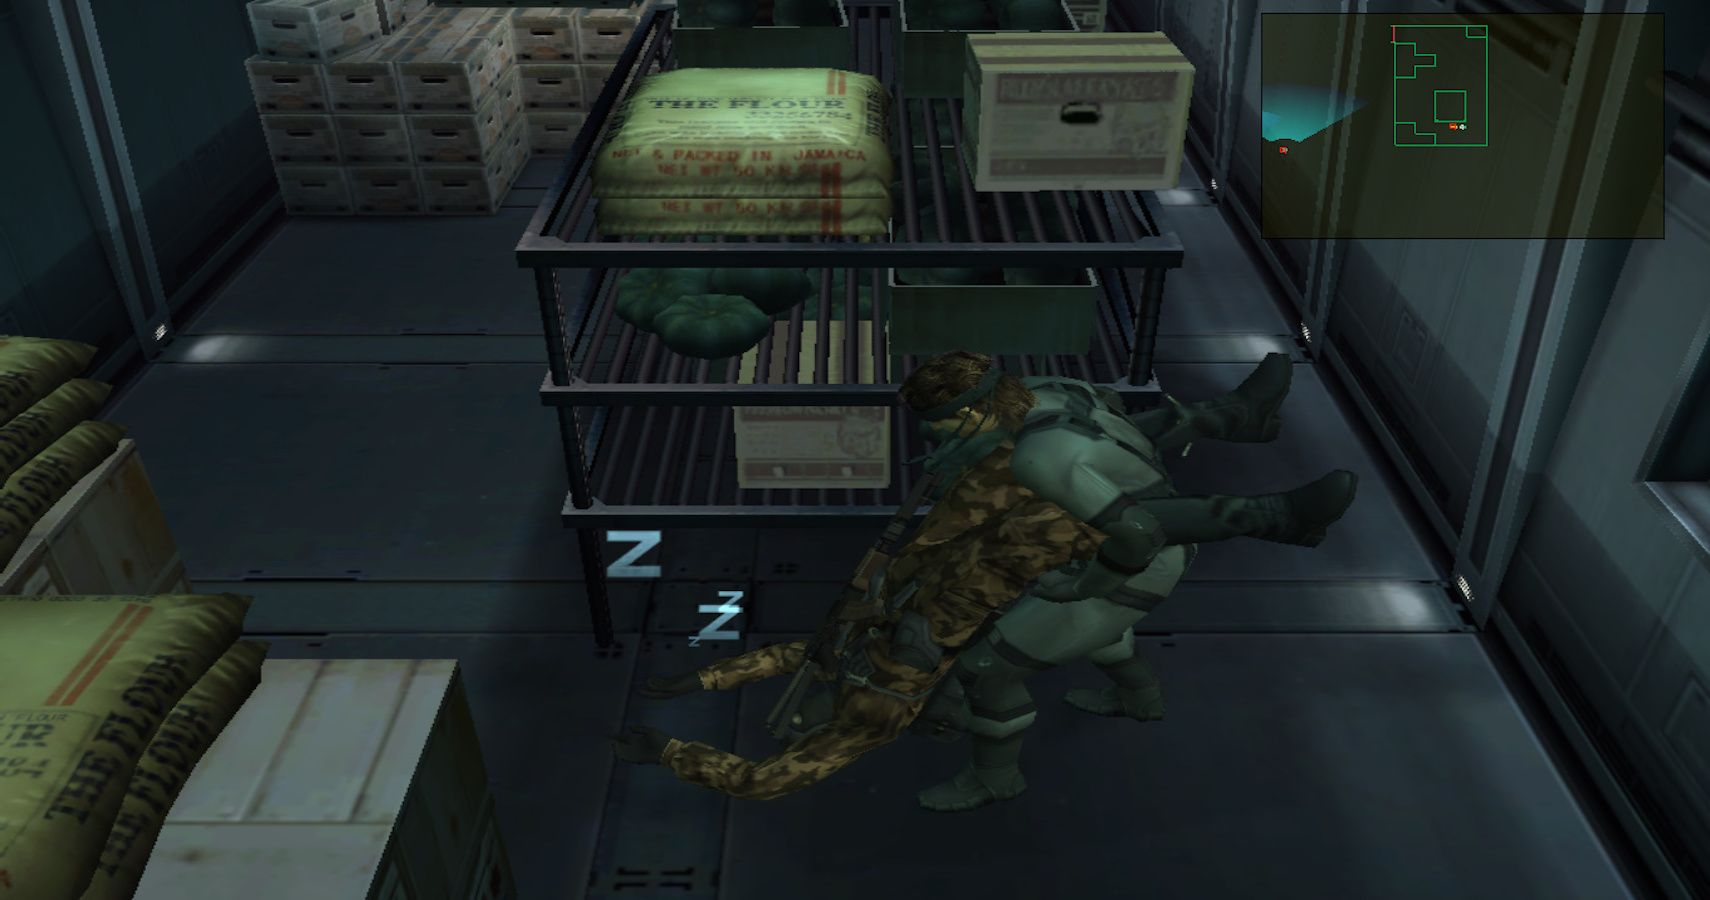 10 Things Only True Fans Know How To Do In Metal Gear Solid 2